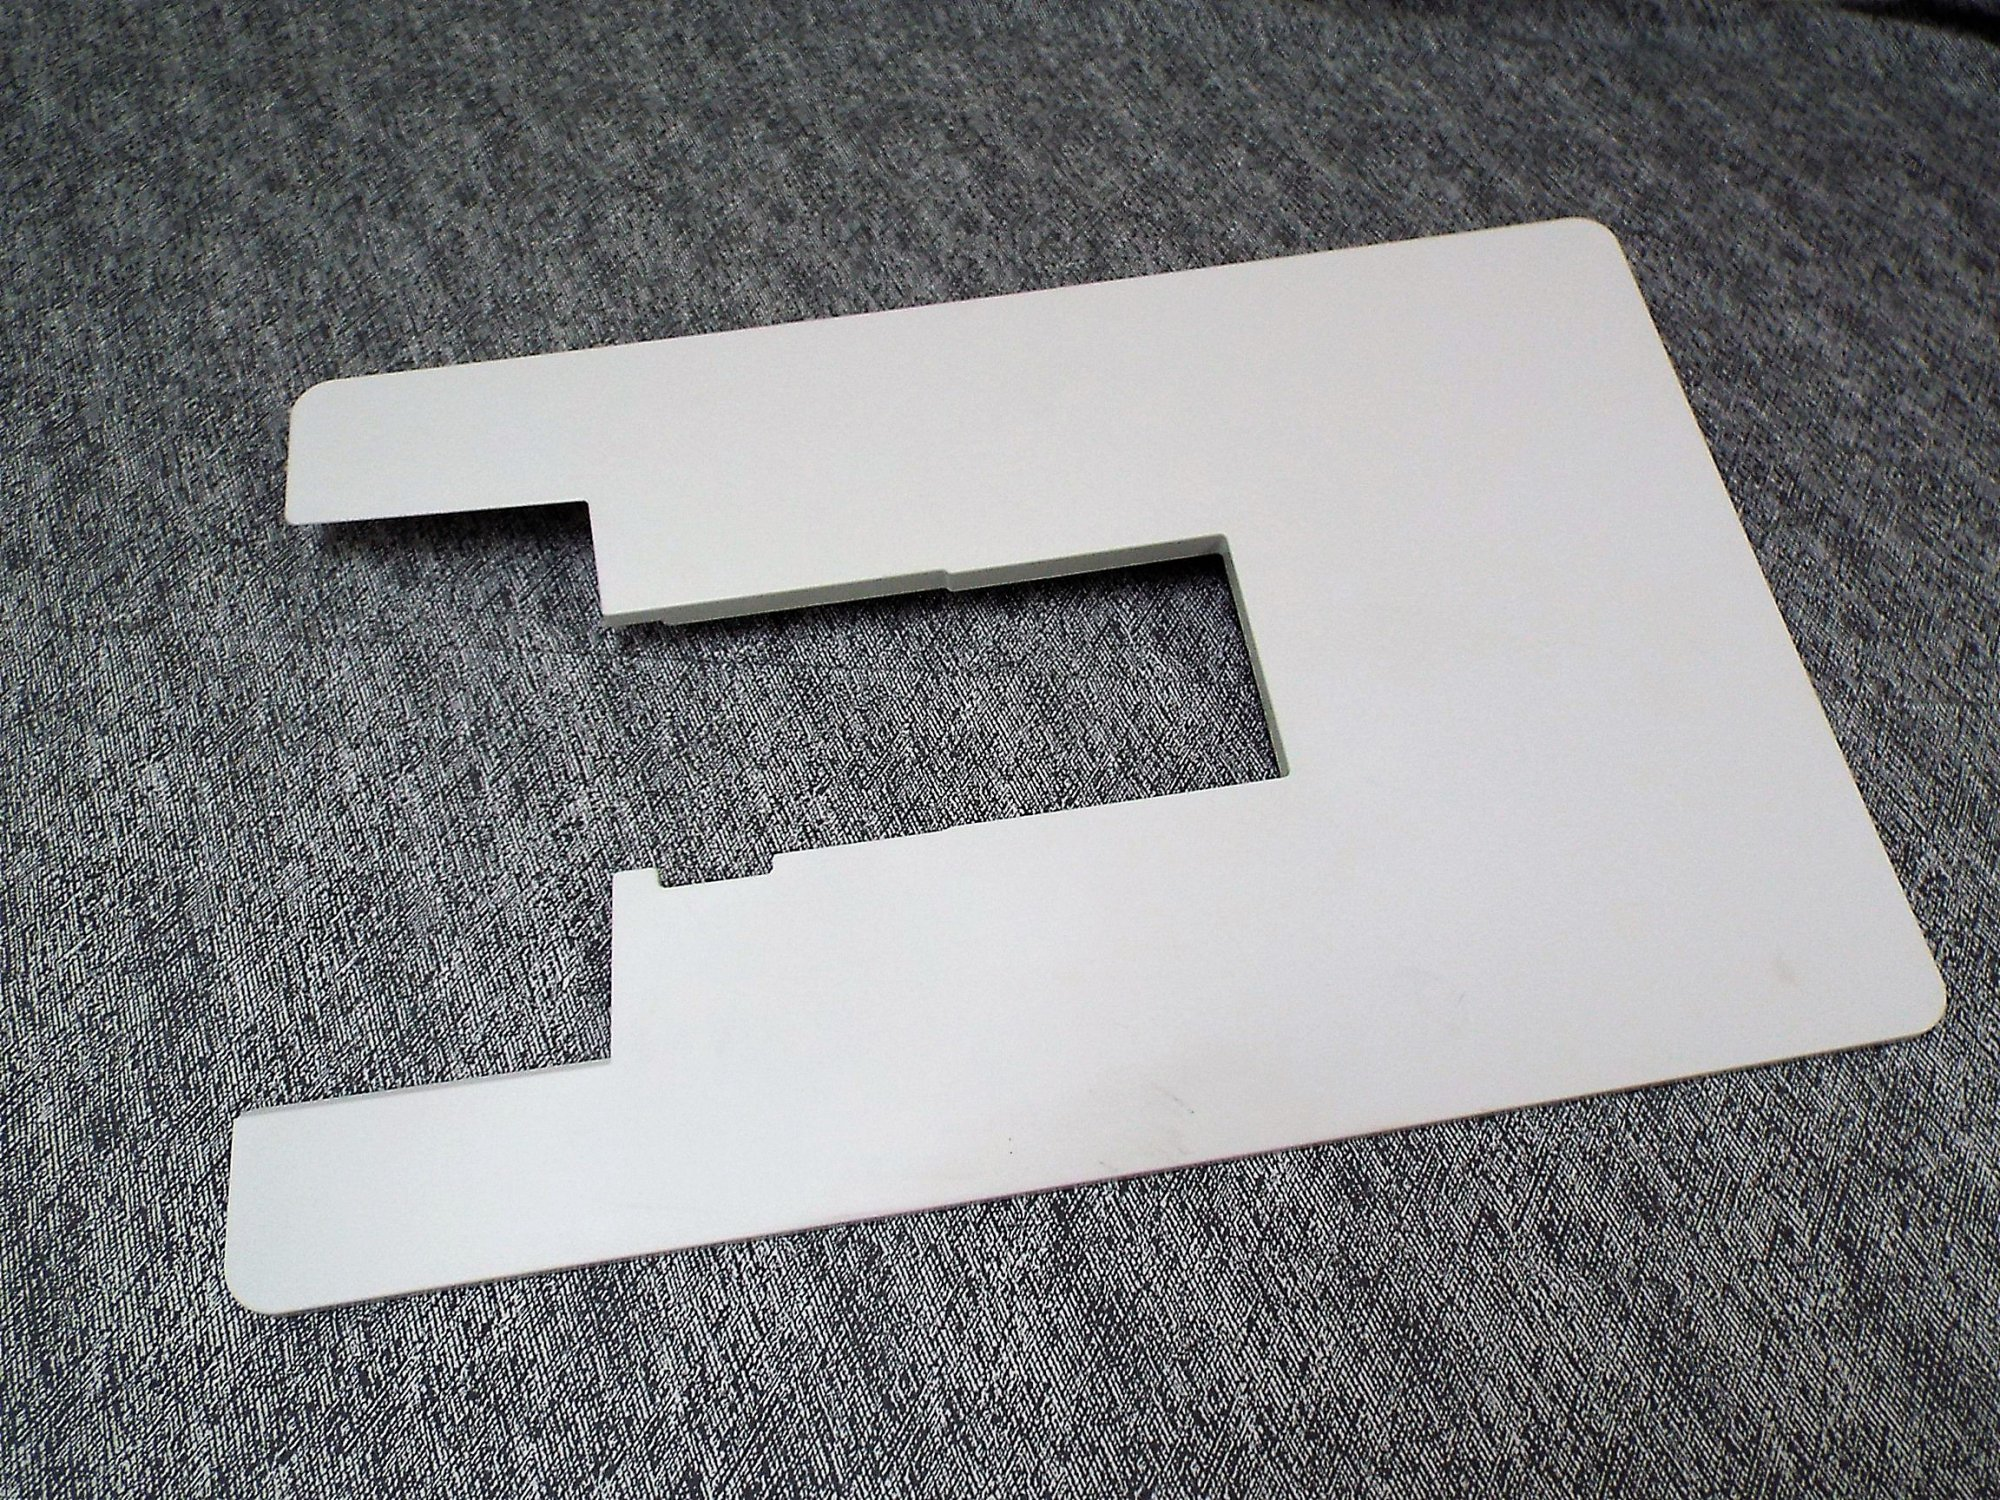 Janome Insert Plate A